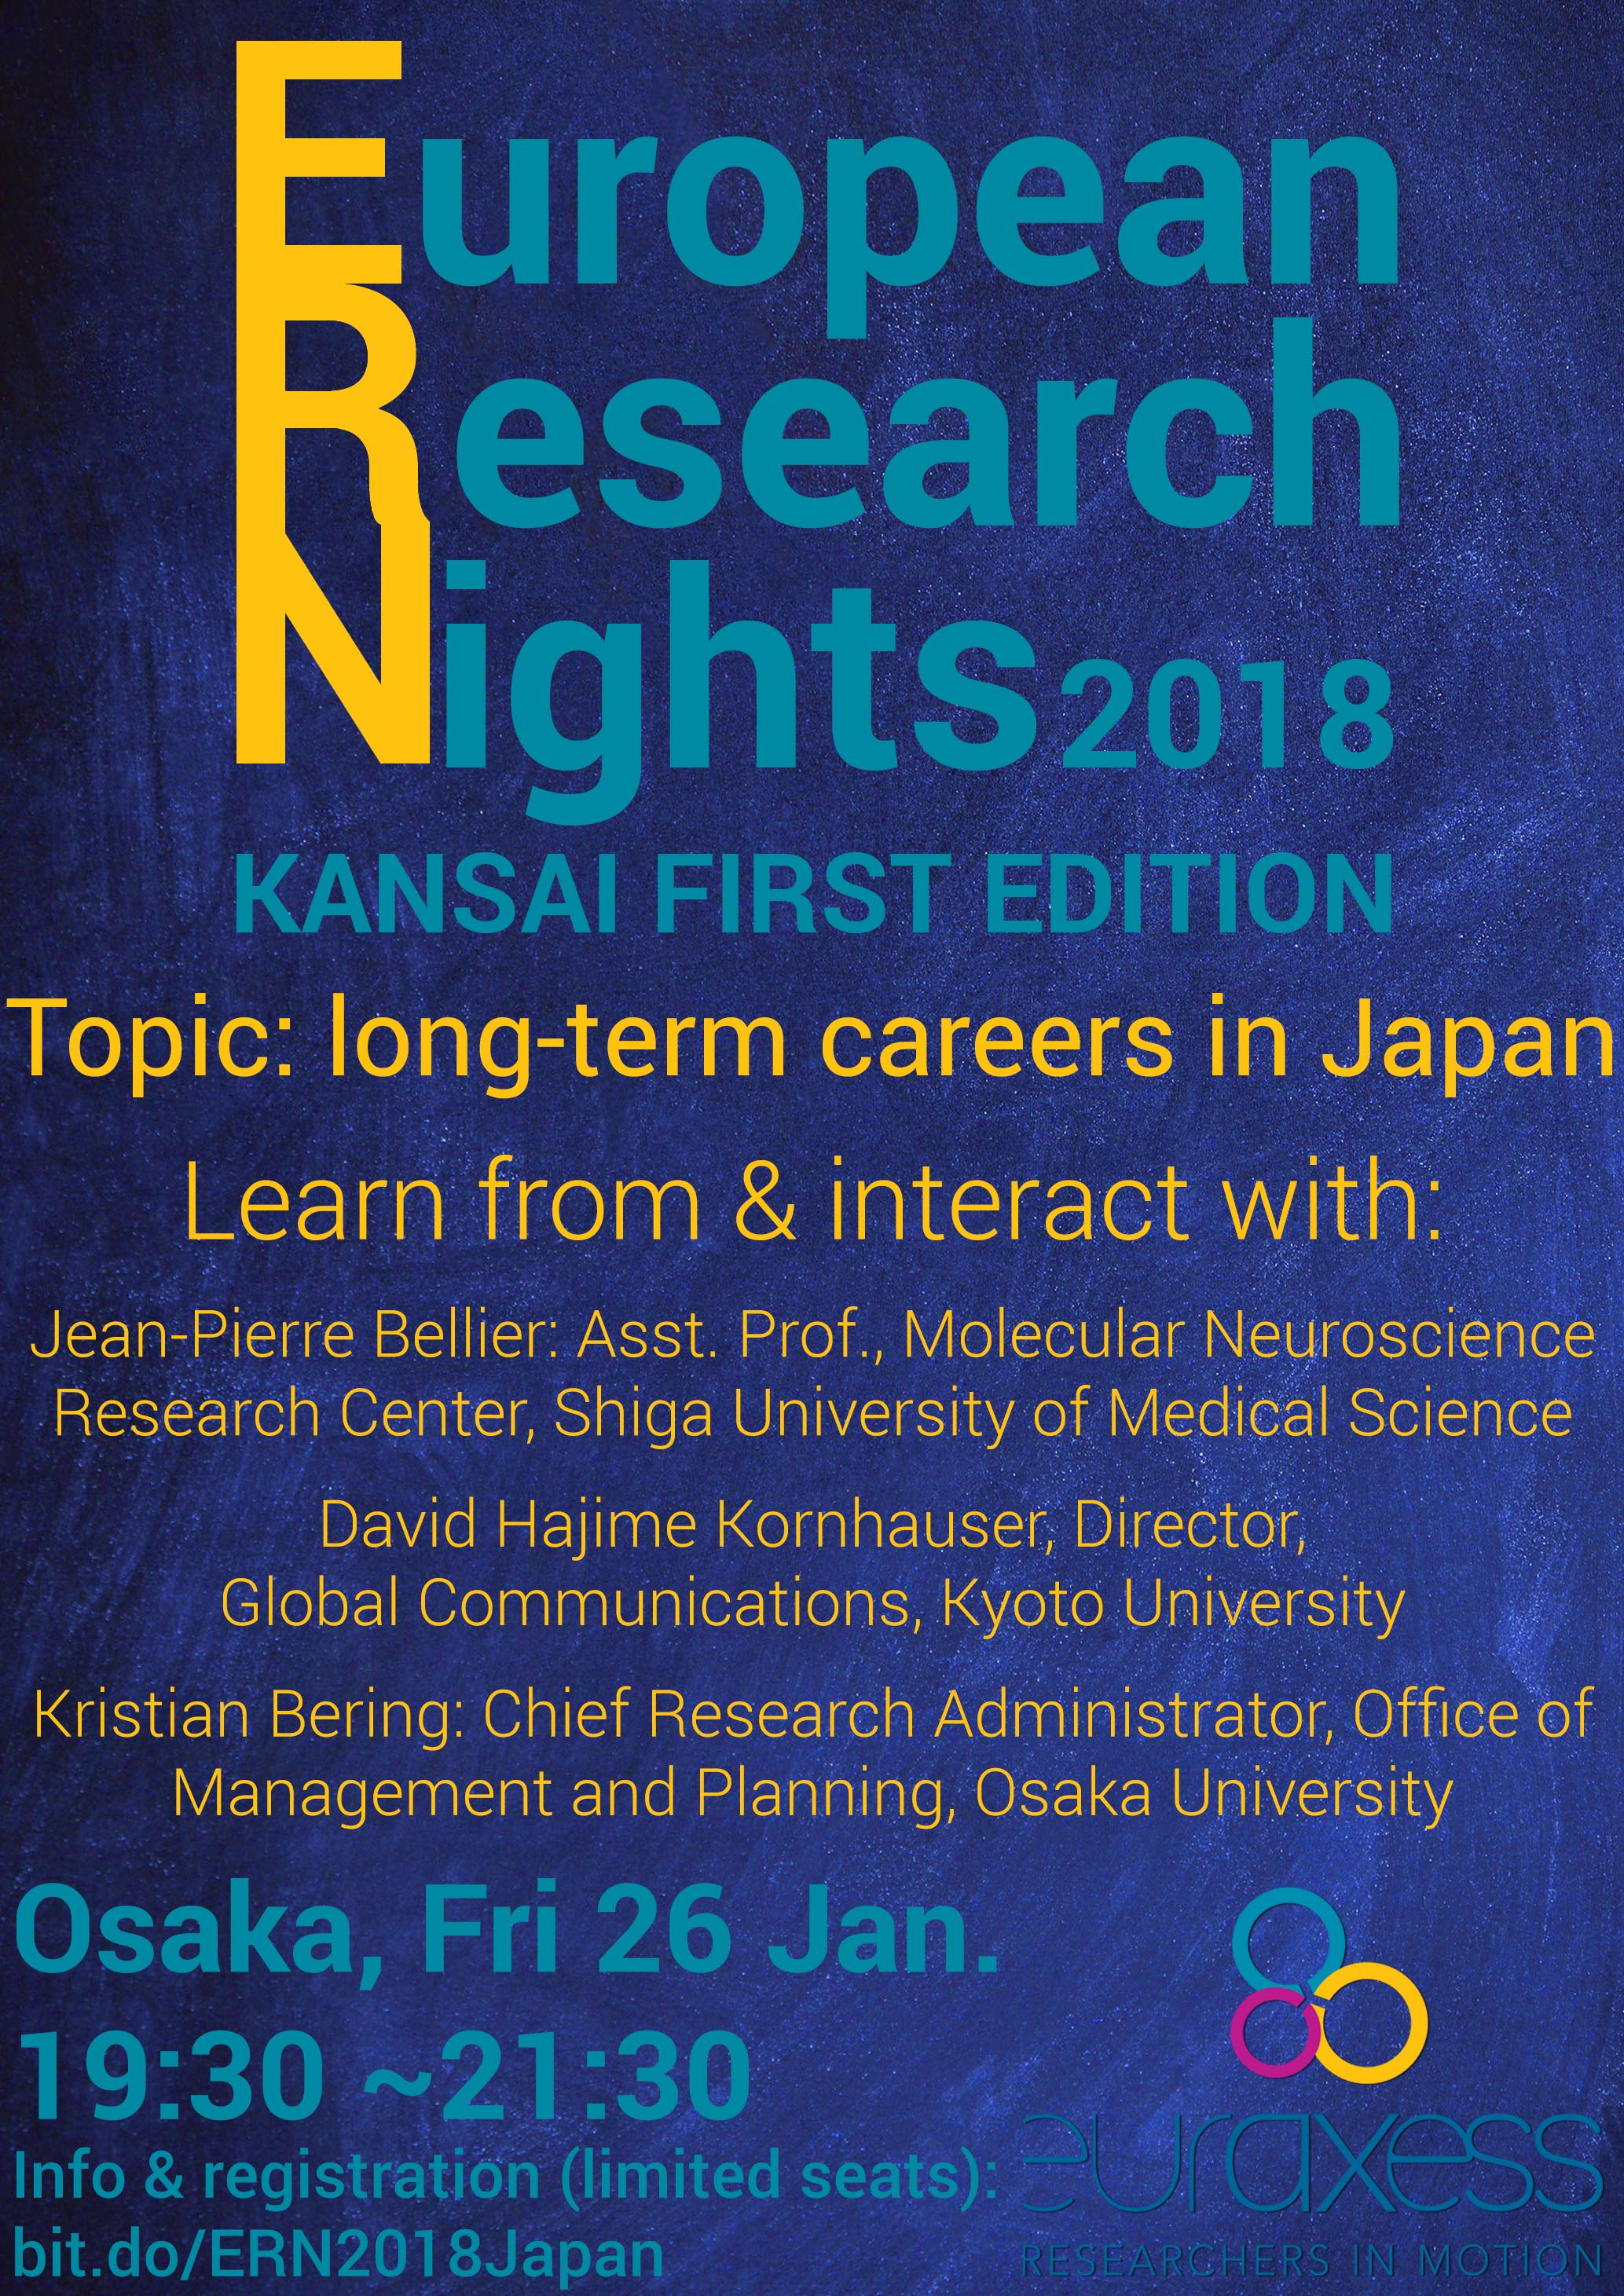 v2_ern_2018_kansai_1st_edition_26_january_osaka.jpg